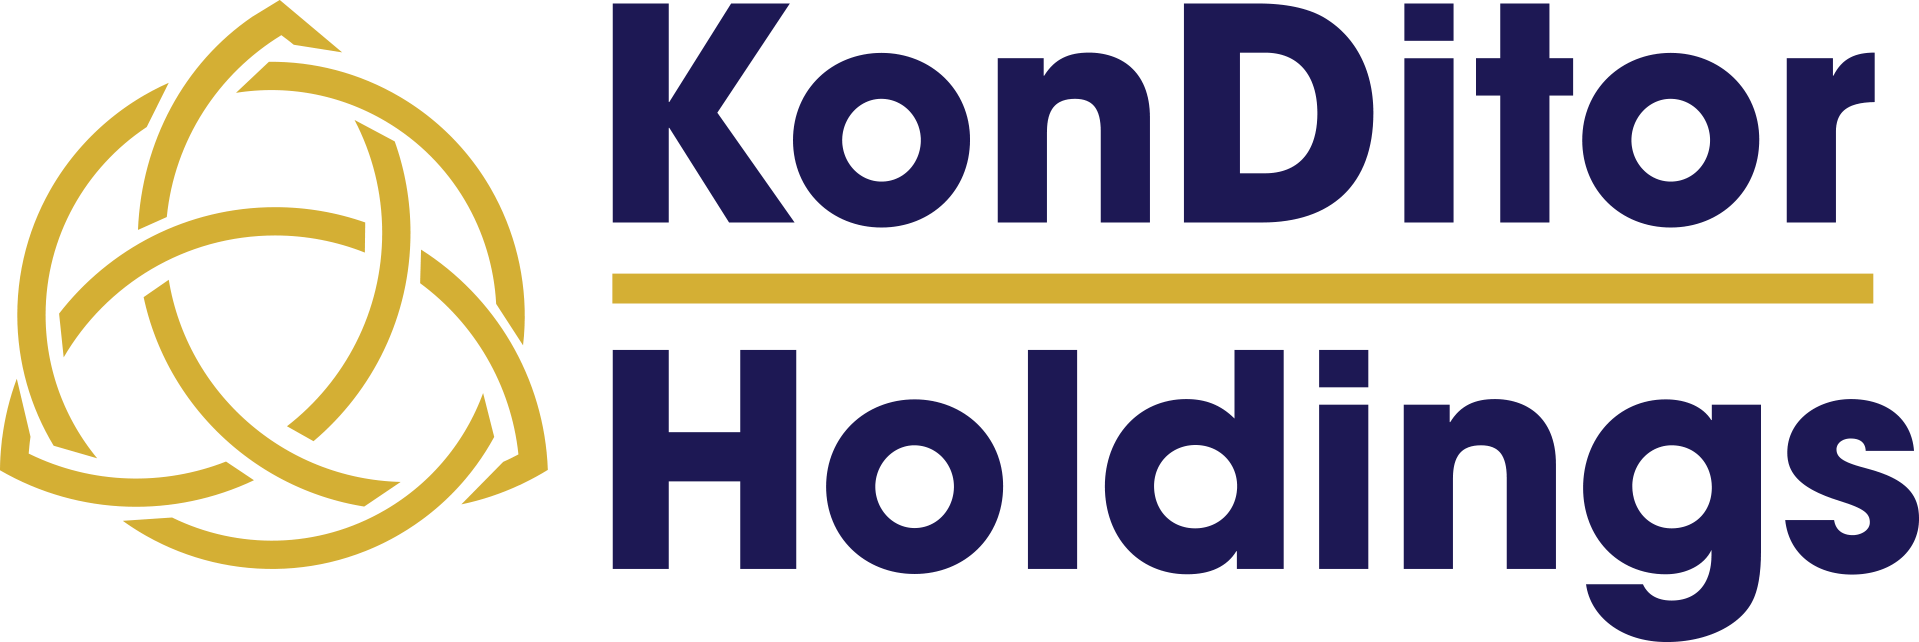 KonDitor_Holdings_LLC